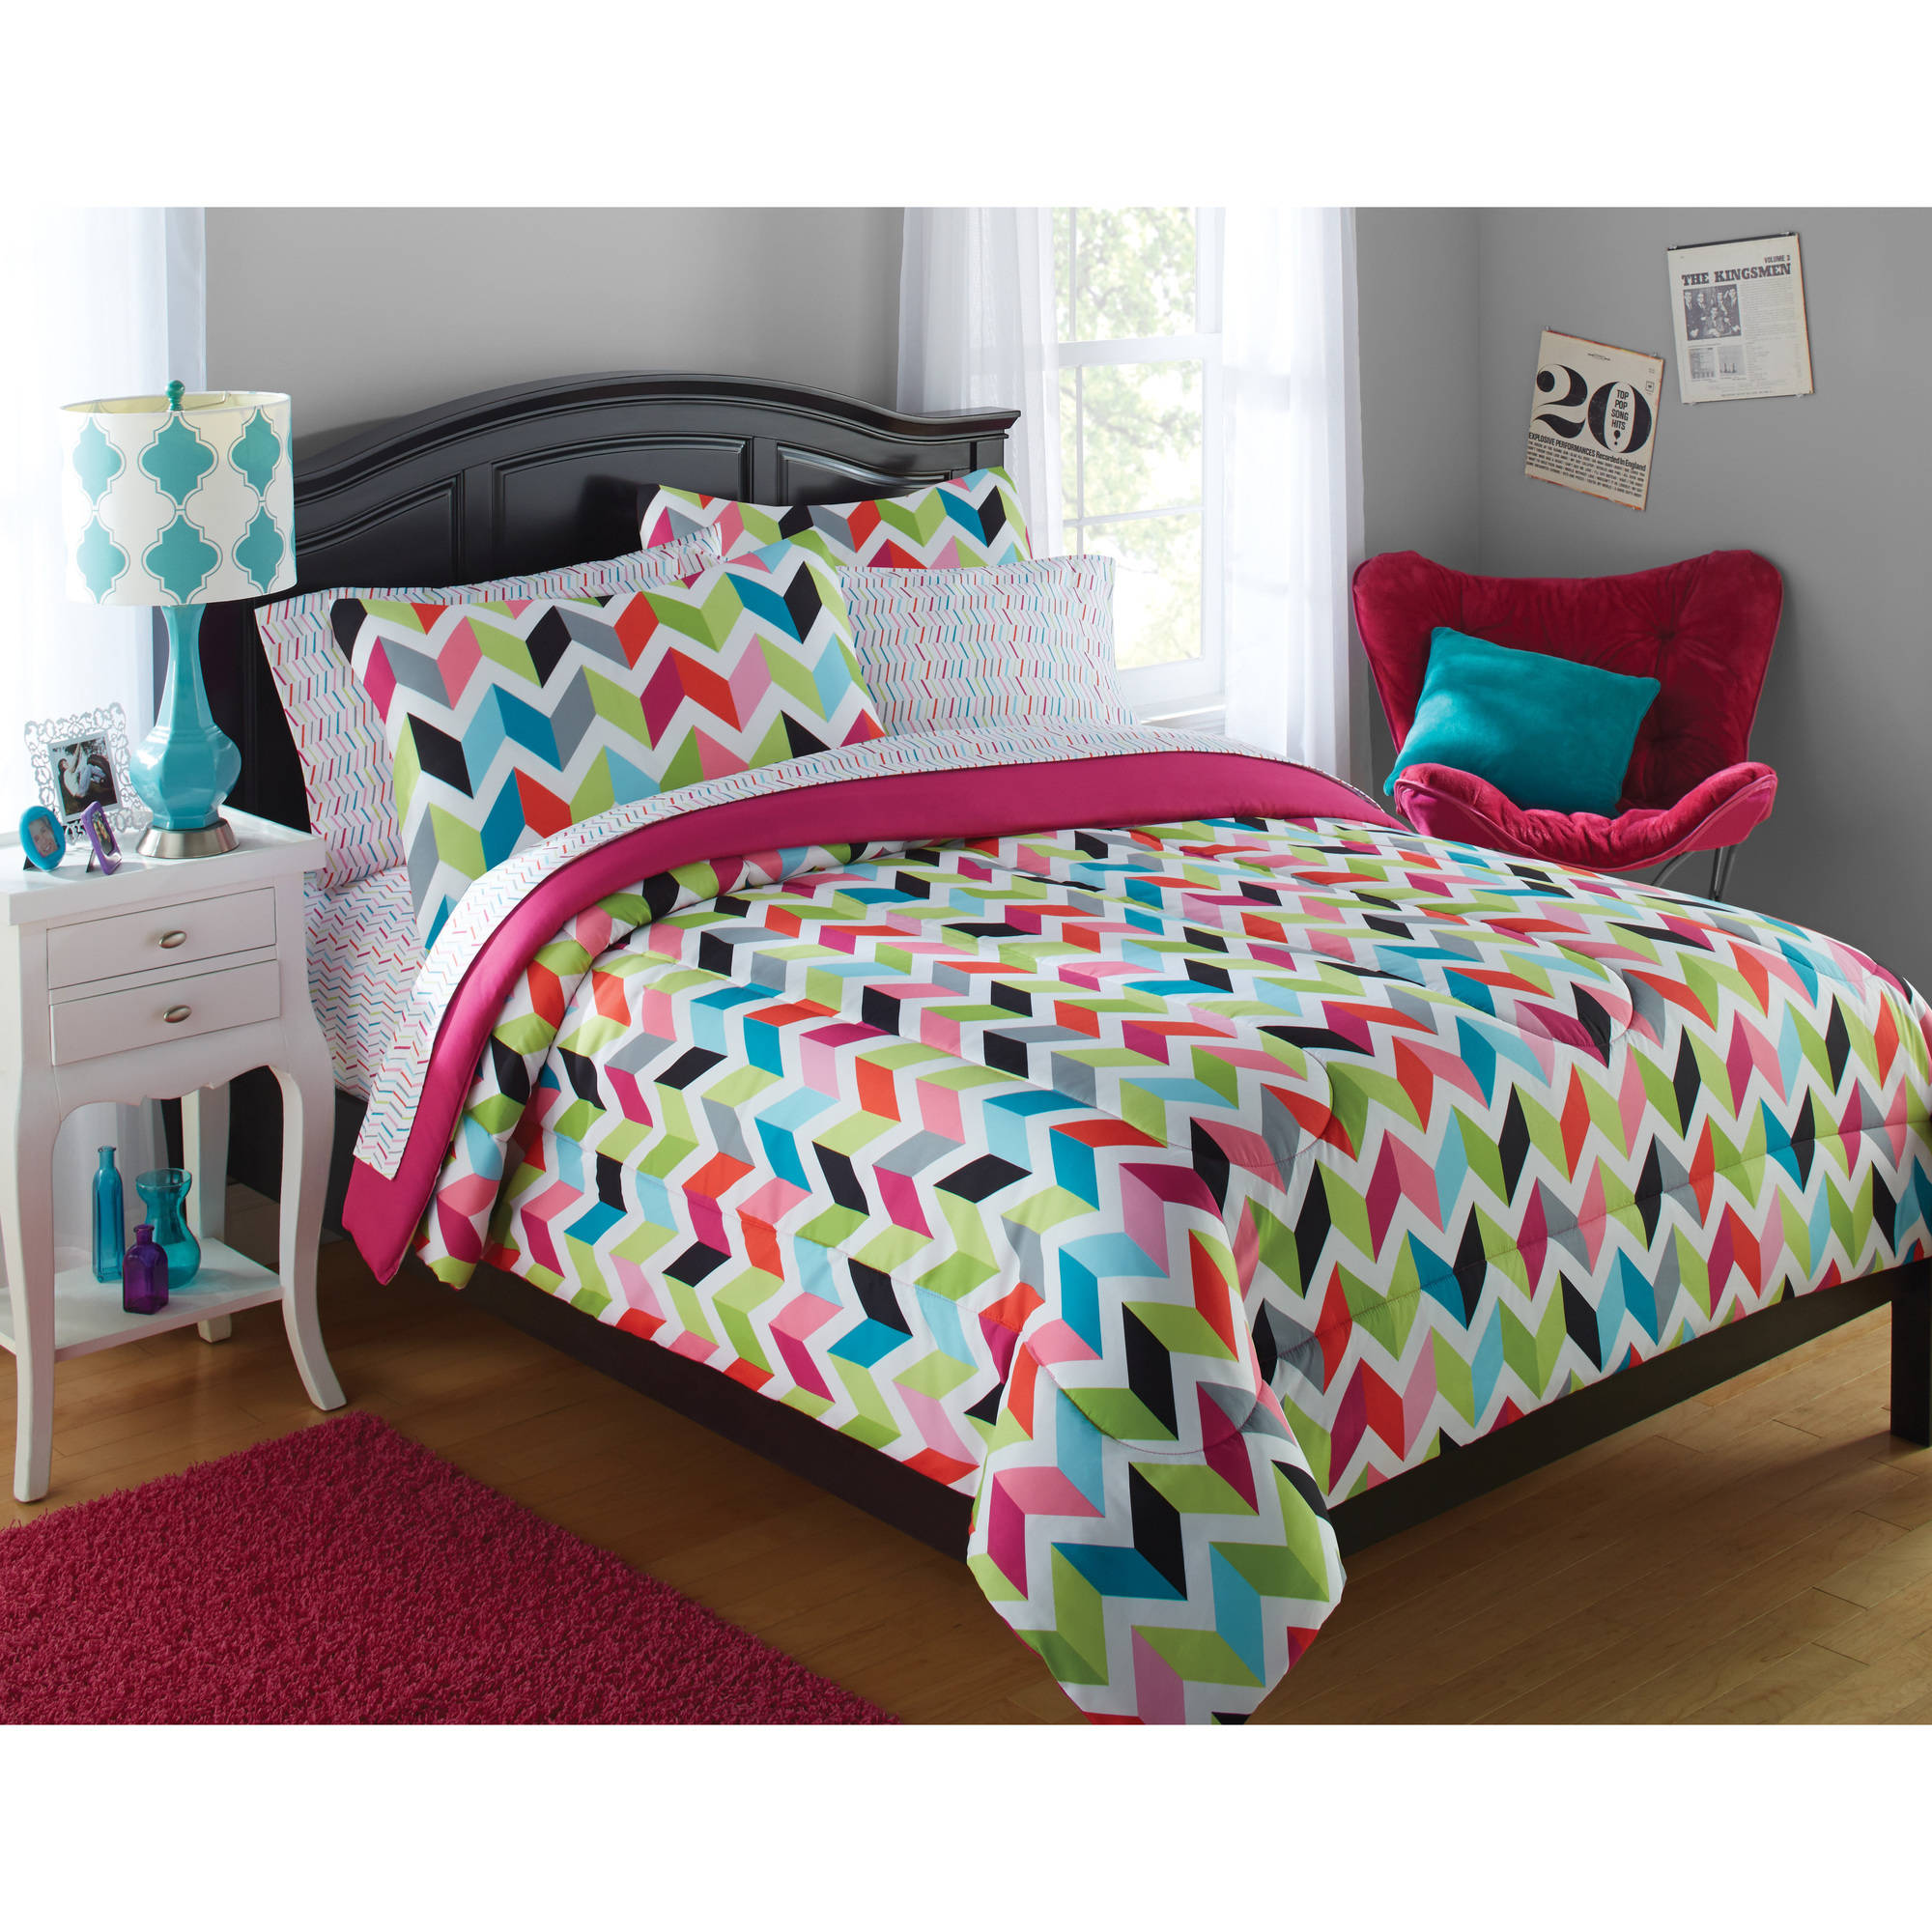 6 College Girl Bright Chevron Bedding Comforter Set Bed In A Bag